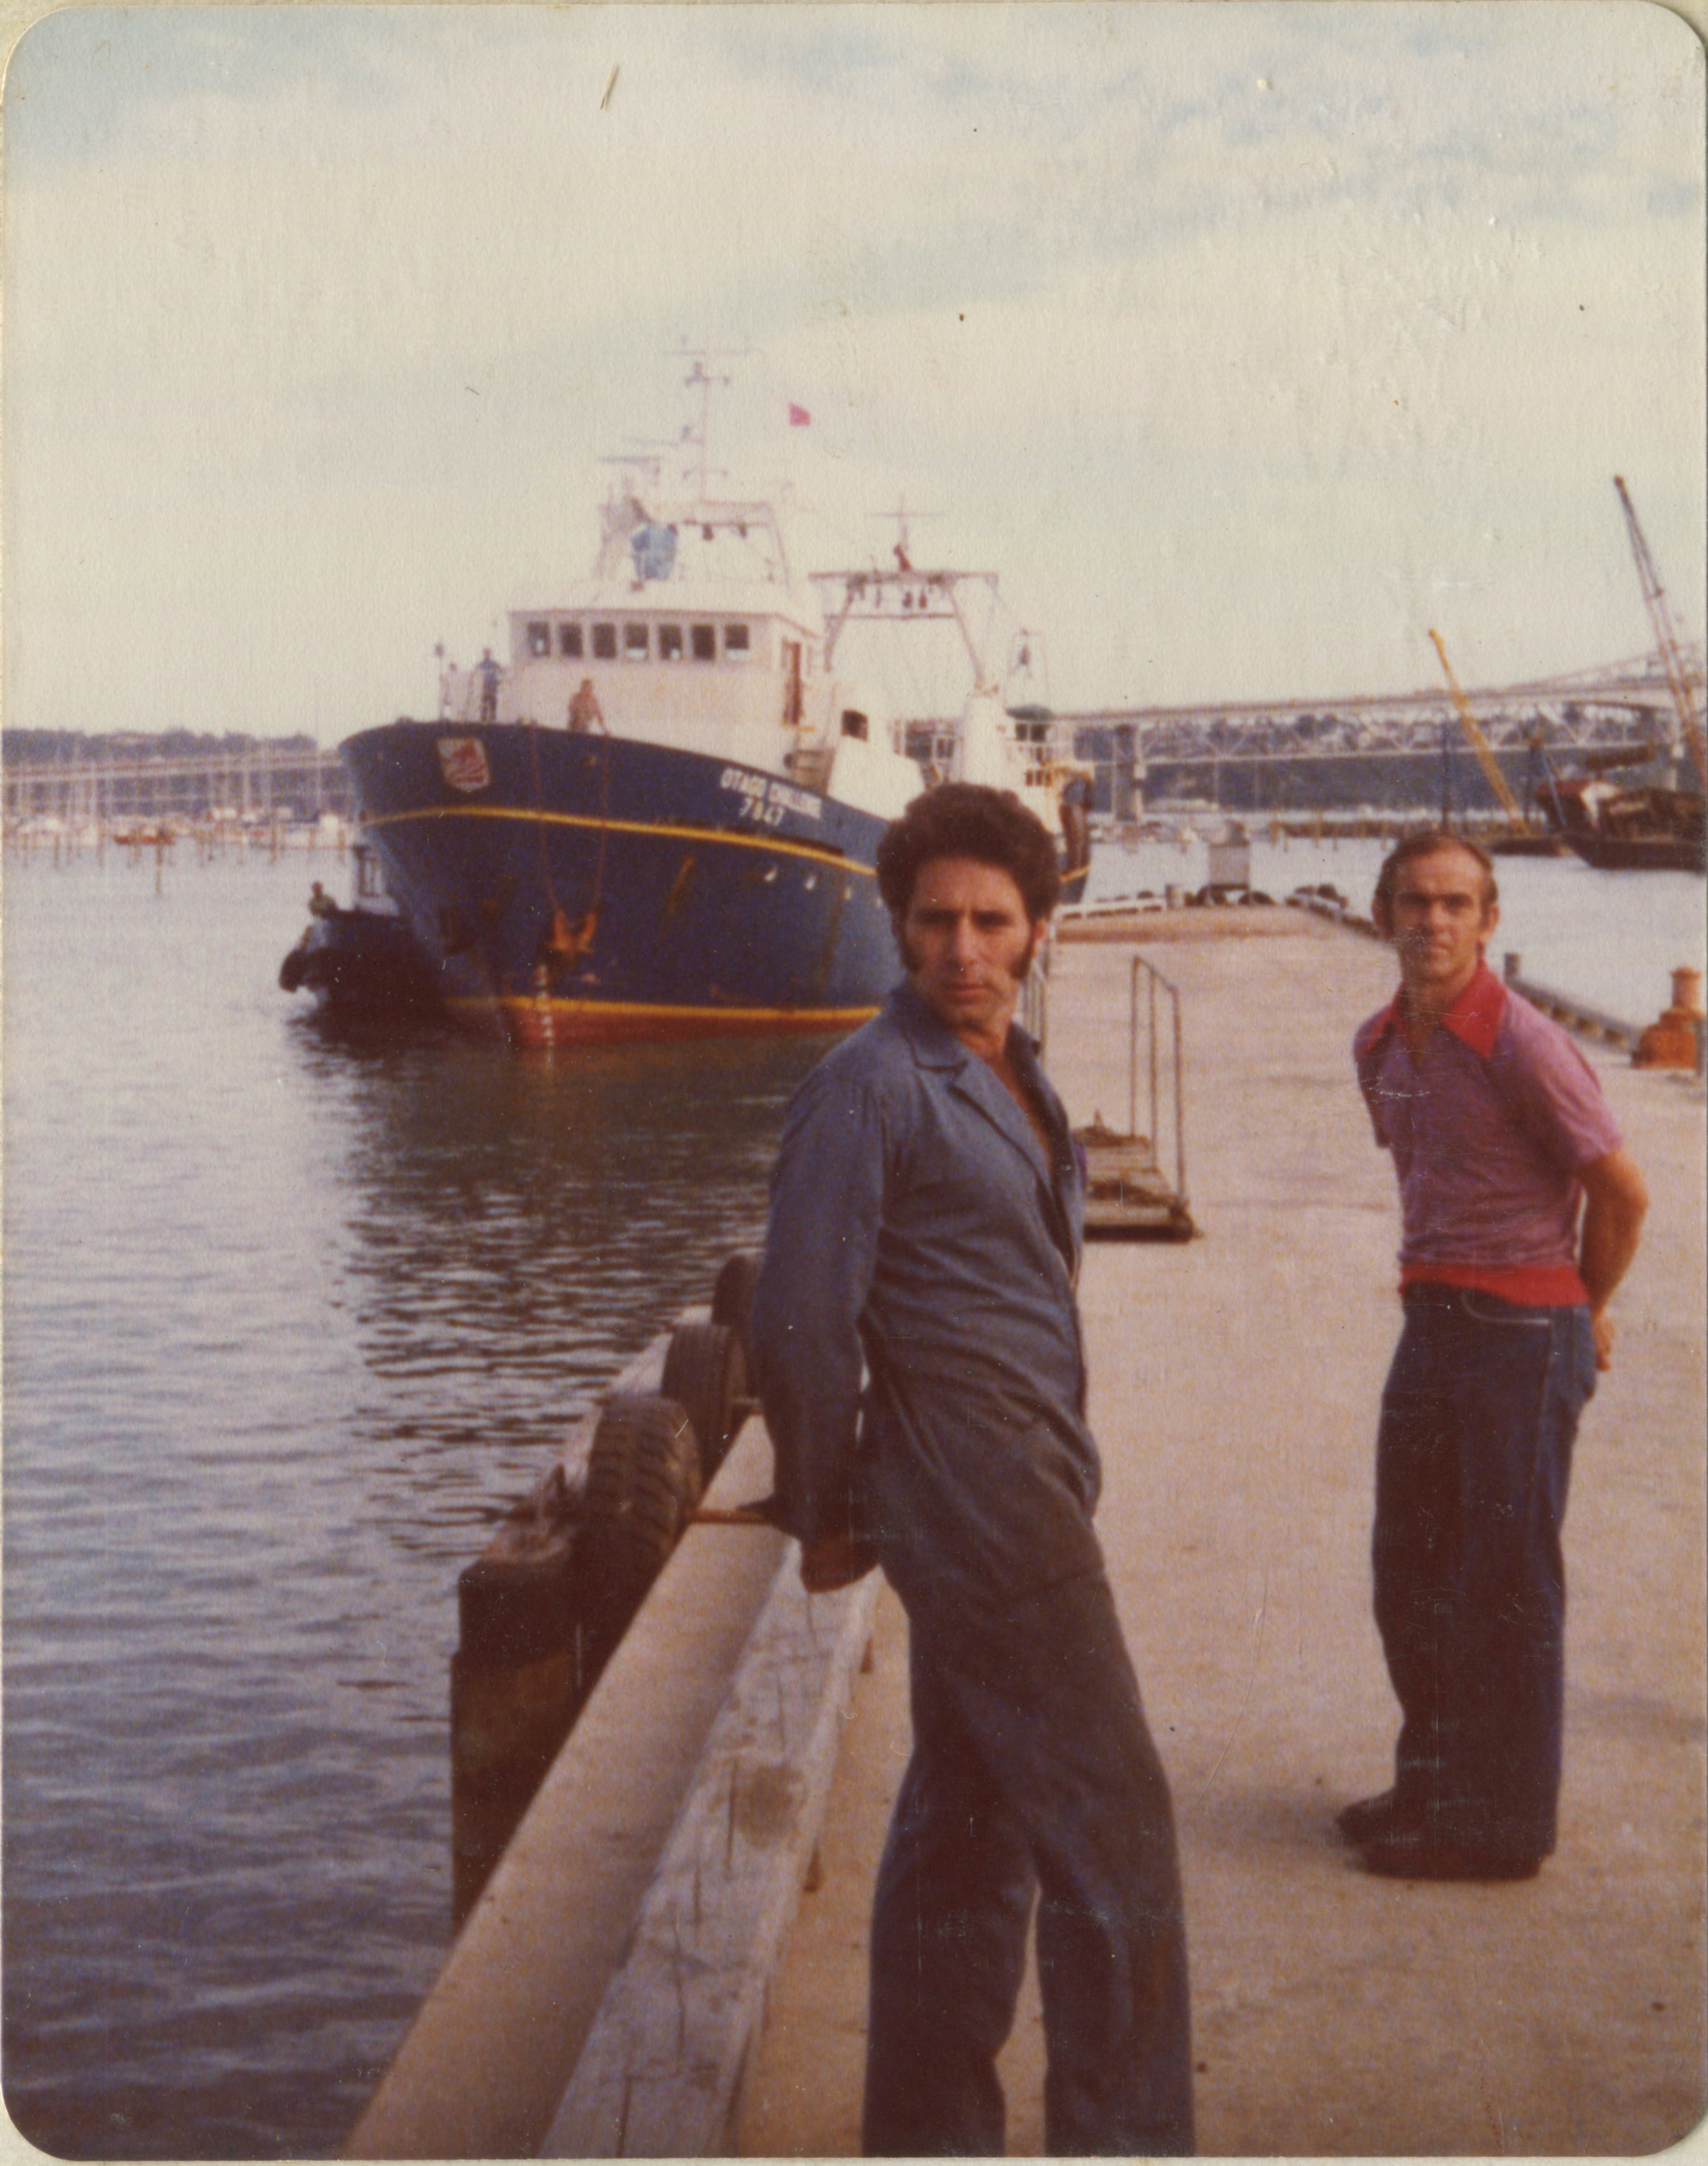 """Nev and """"The Otago Challenge"""" arriving on the dock upon arrival from Spain in the 1970s. Courtesy of Titan Engineering."""